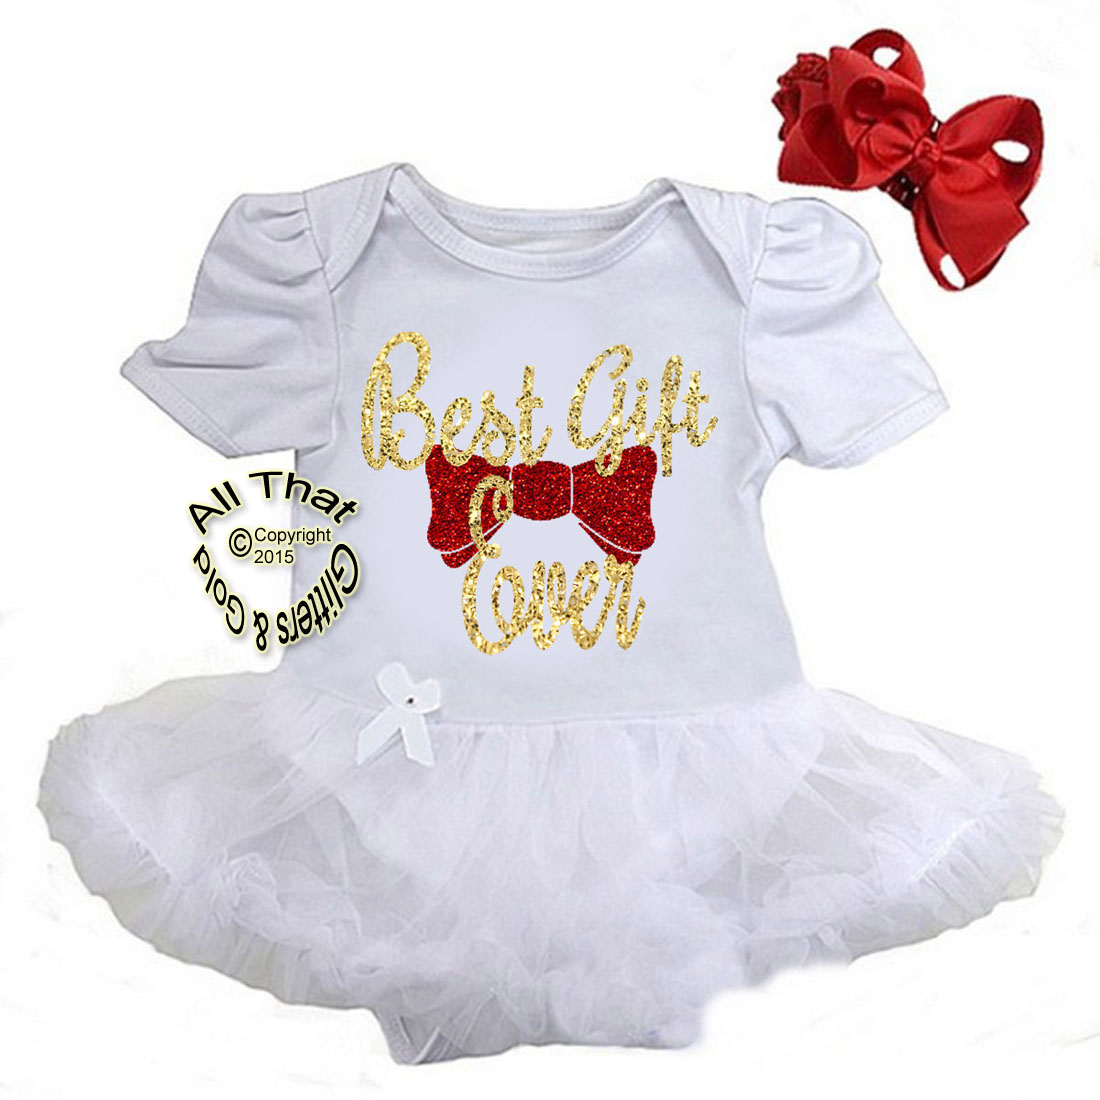 Cute 2 Piece White and Gold Glitter Best Gift Ever Christmas Outfit For Baby Girls